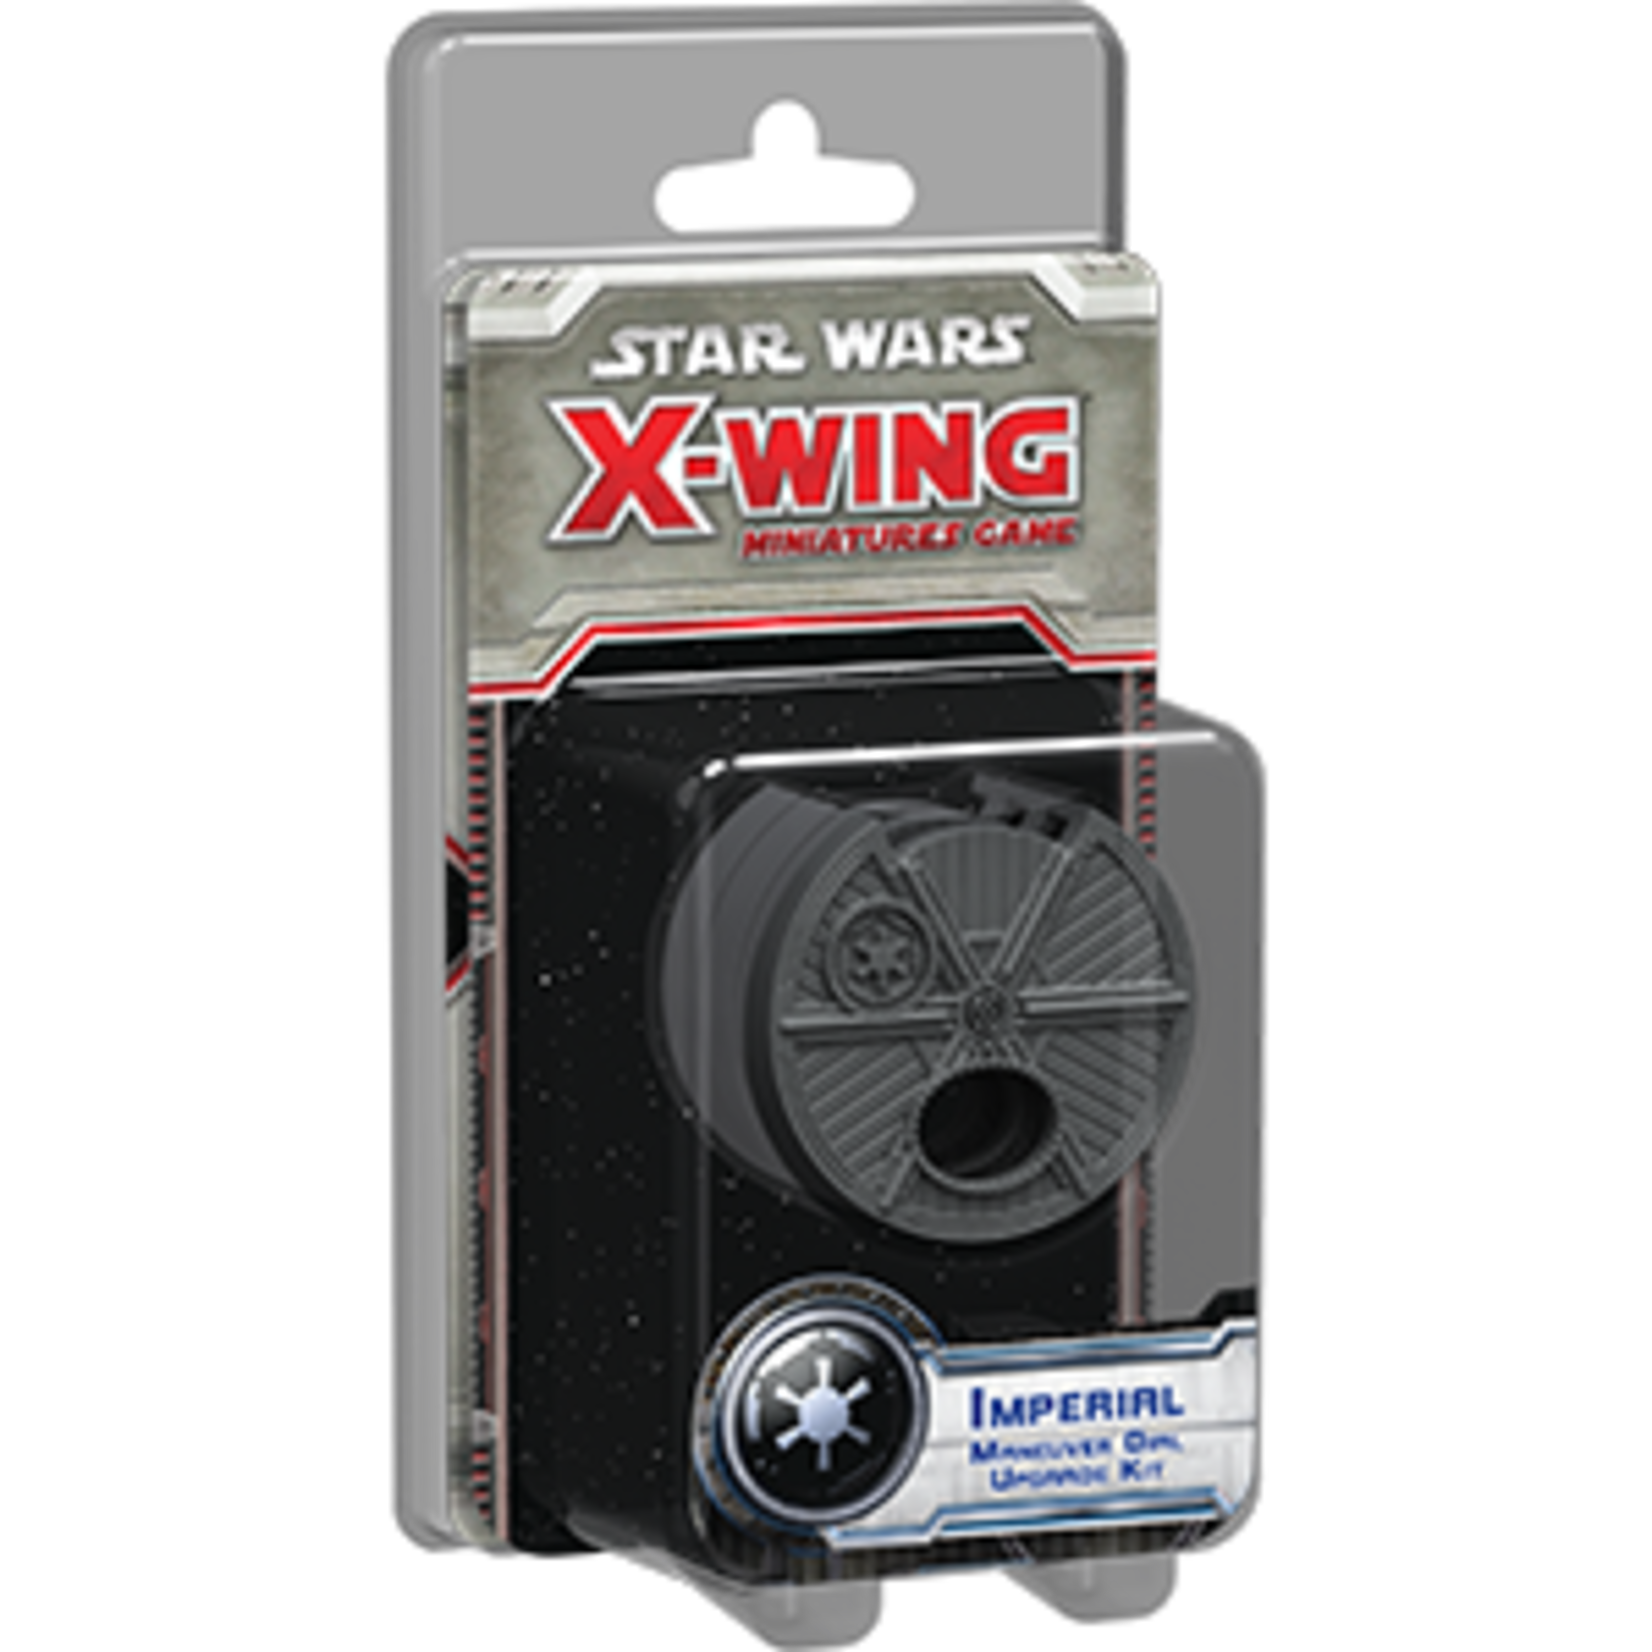 Star Wars X-Wing Miniatures Game Imperial Maneuver Dial